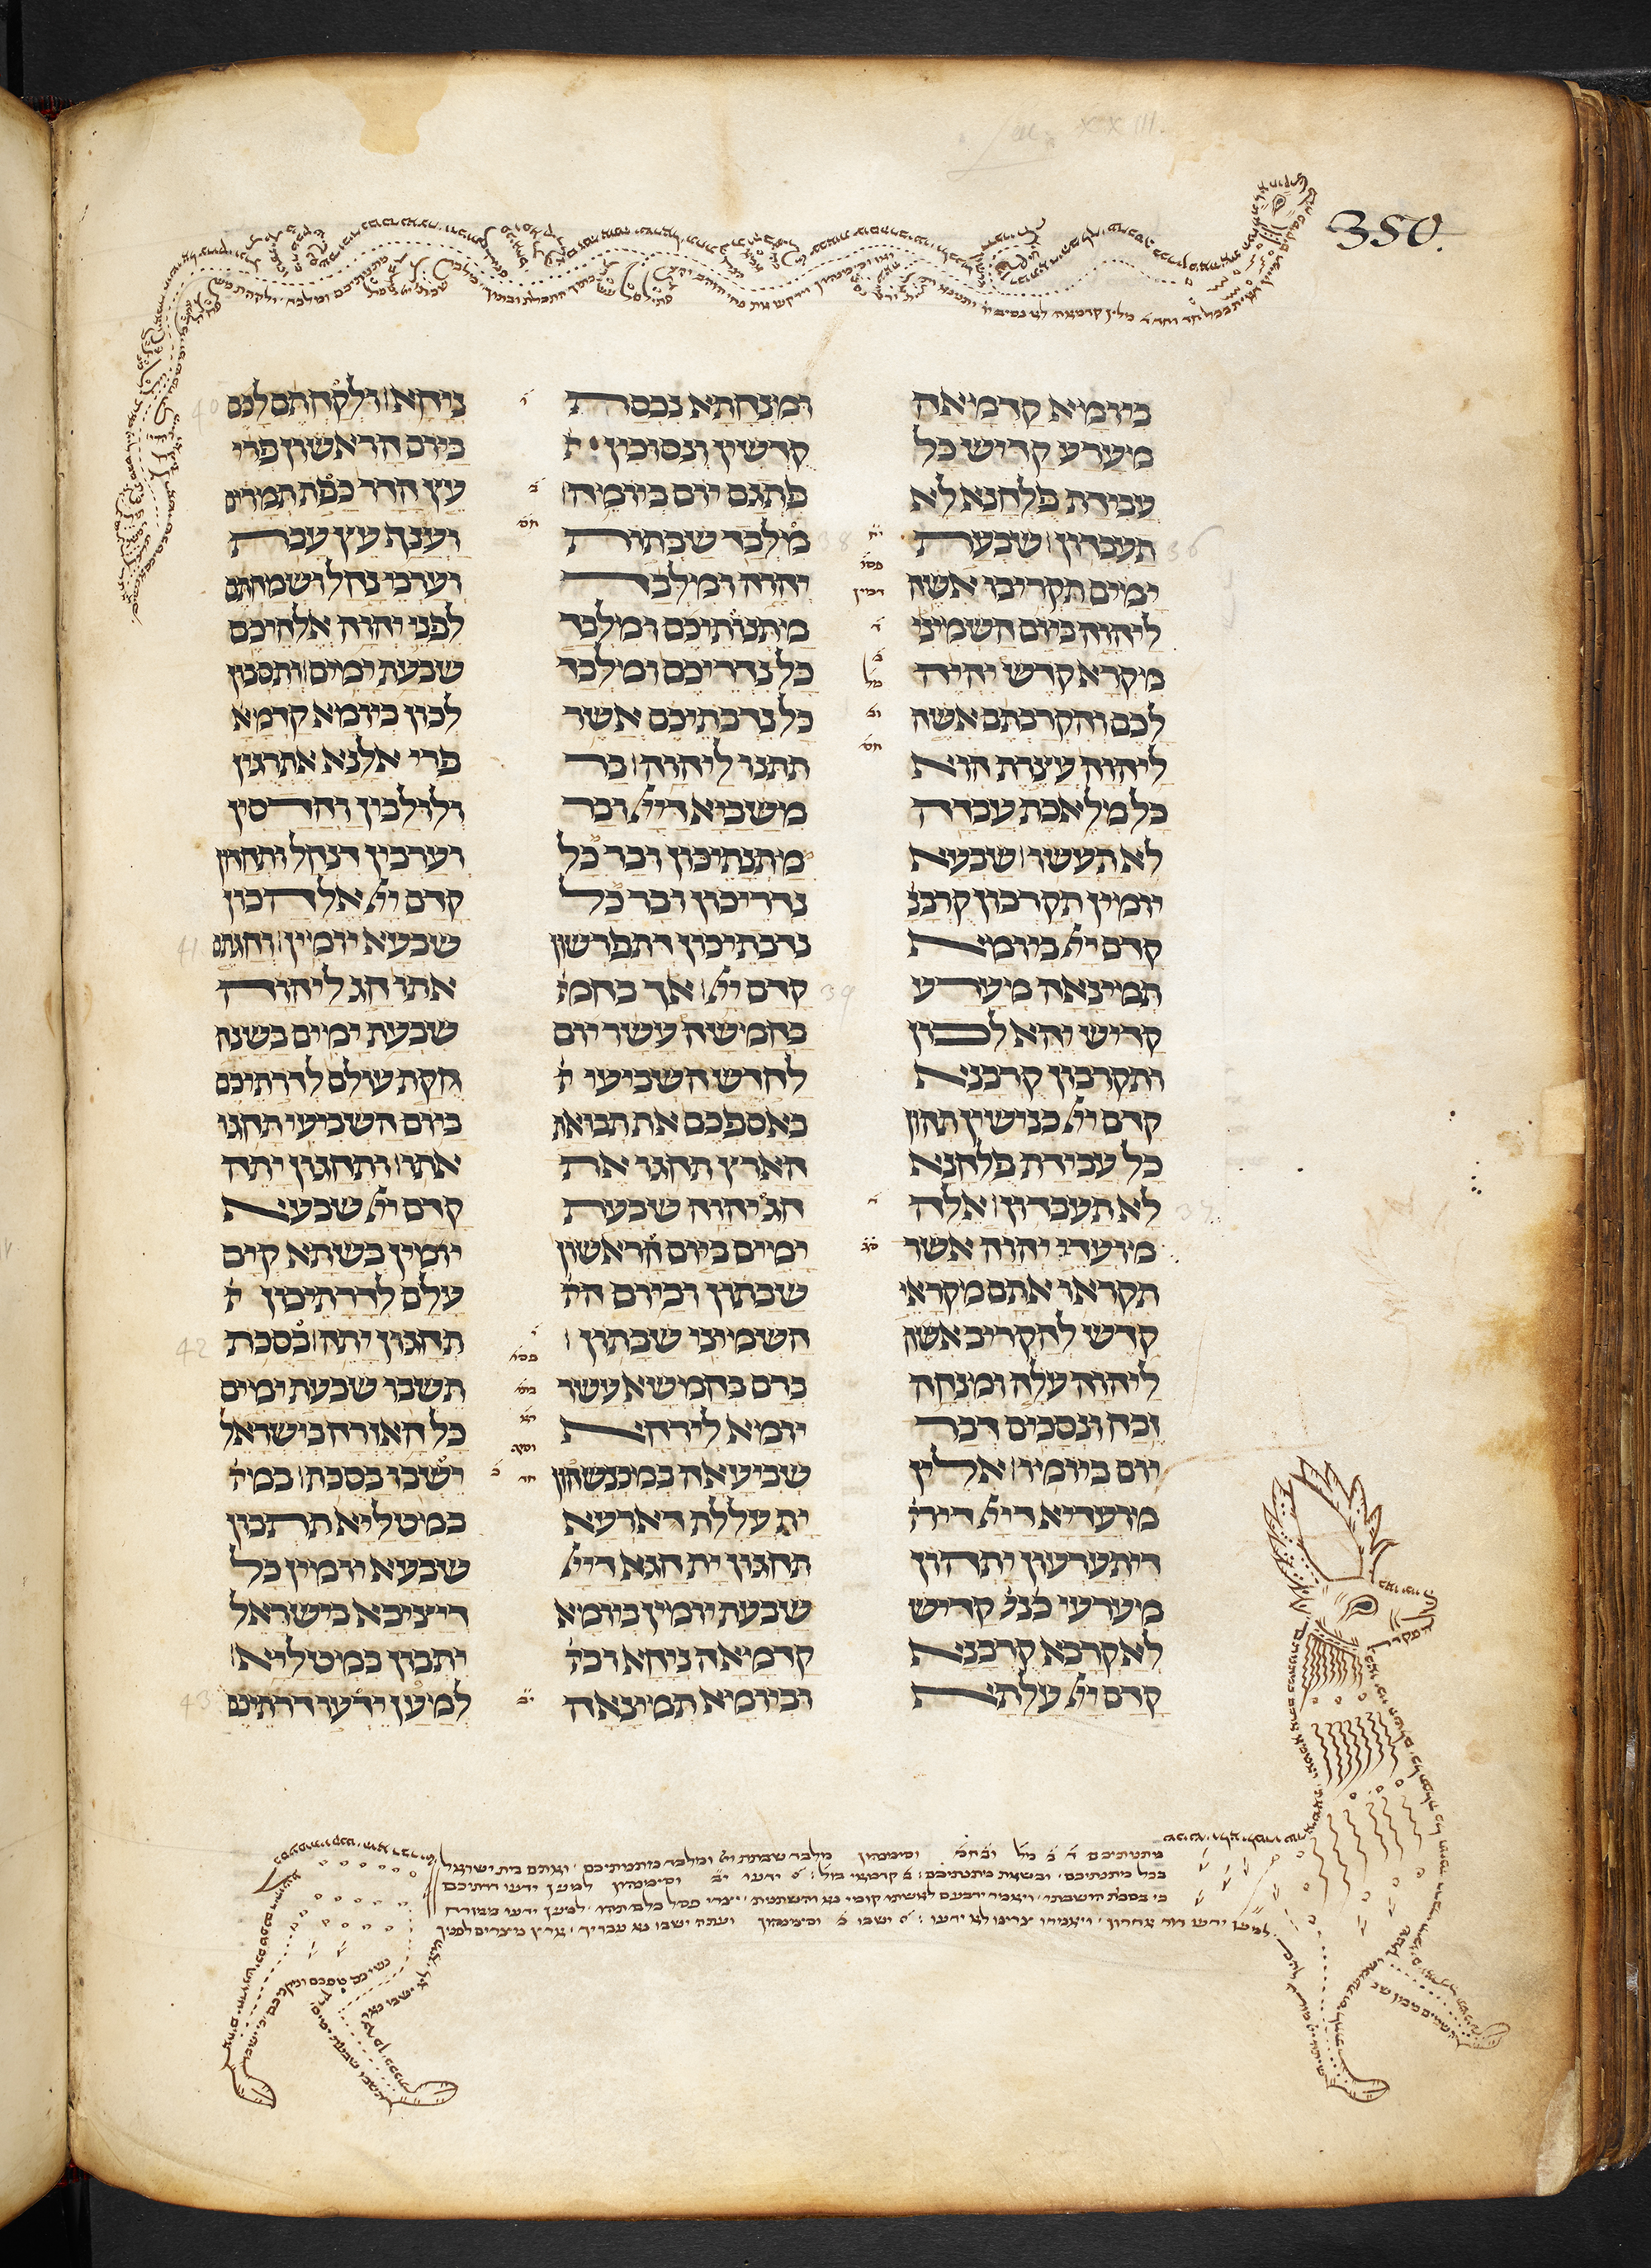 Jonah Pentateuch, Germany, 2nd half of 13th century CE, Add MS 21160, Hebrew Manuscripts Digitisation Project, British Library